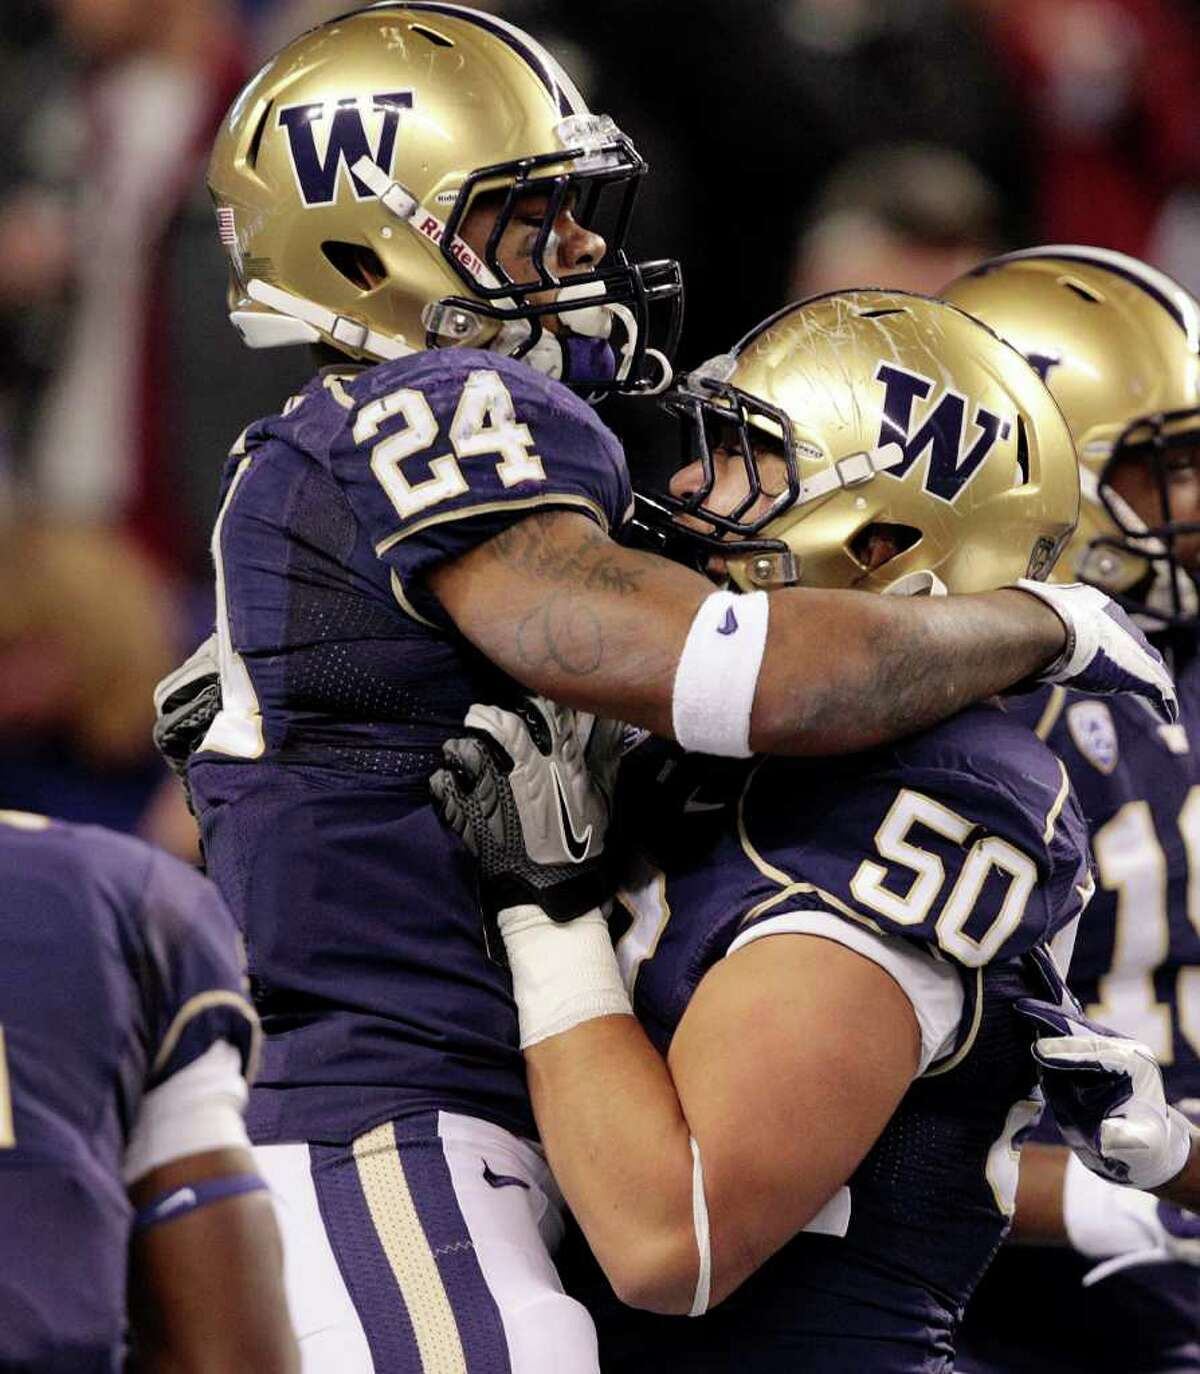 Washington's Jesse Callier (24) celebrates with Thomas Tutogi after scoring on a blocked punt against Washington State in the first half of an NCAA college football game on Saturday, Nov. 26, 2011, in Seattle.